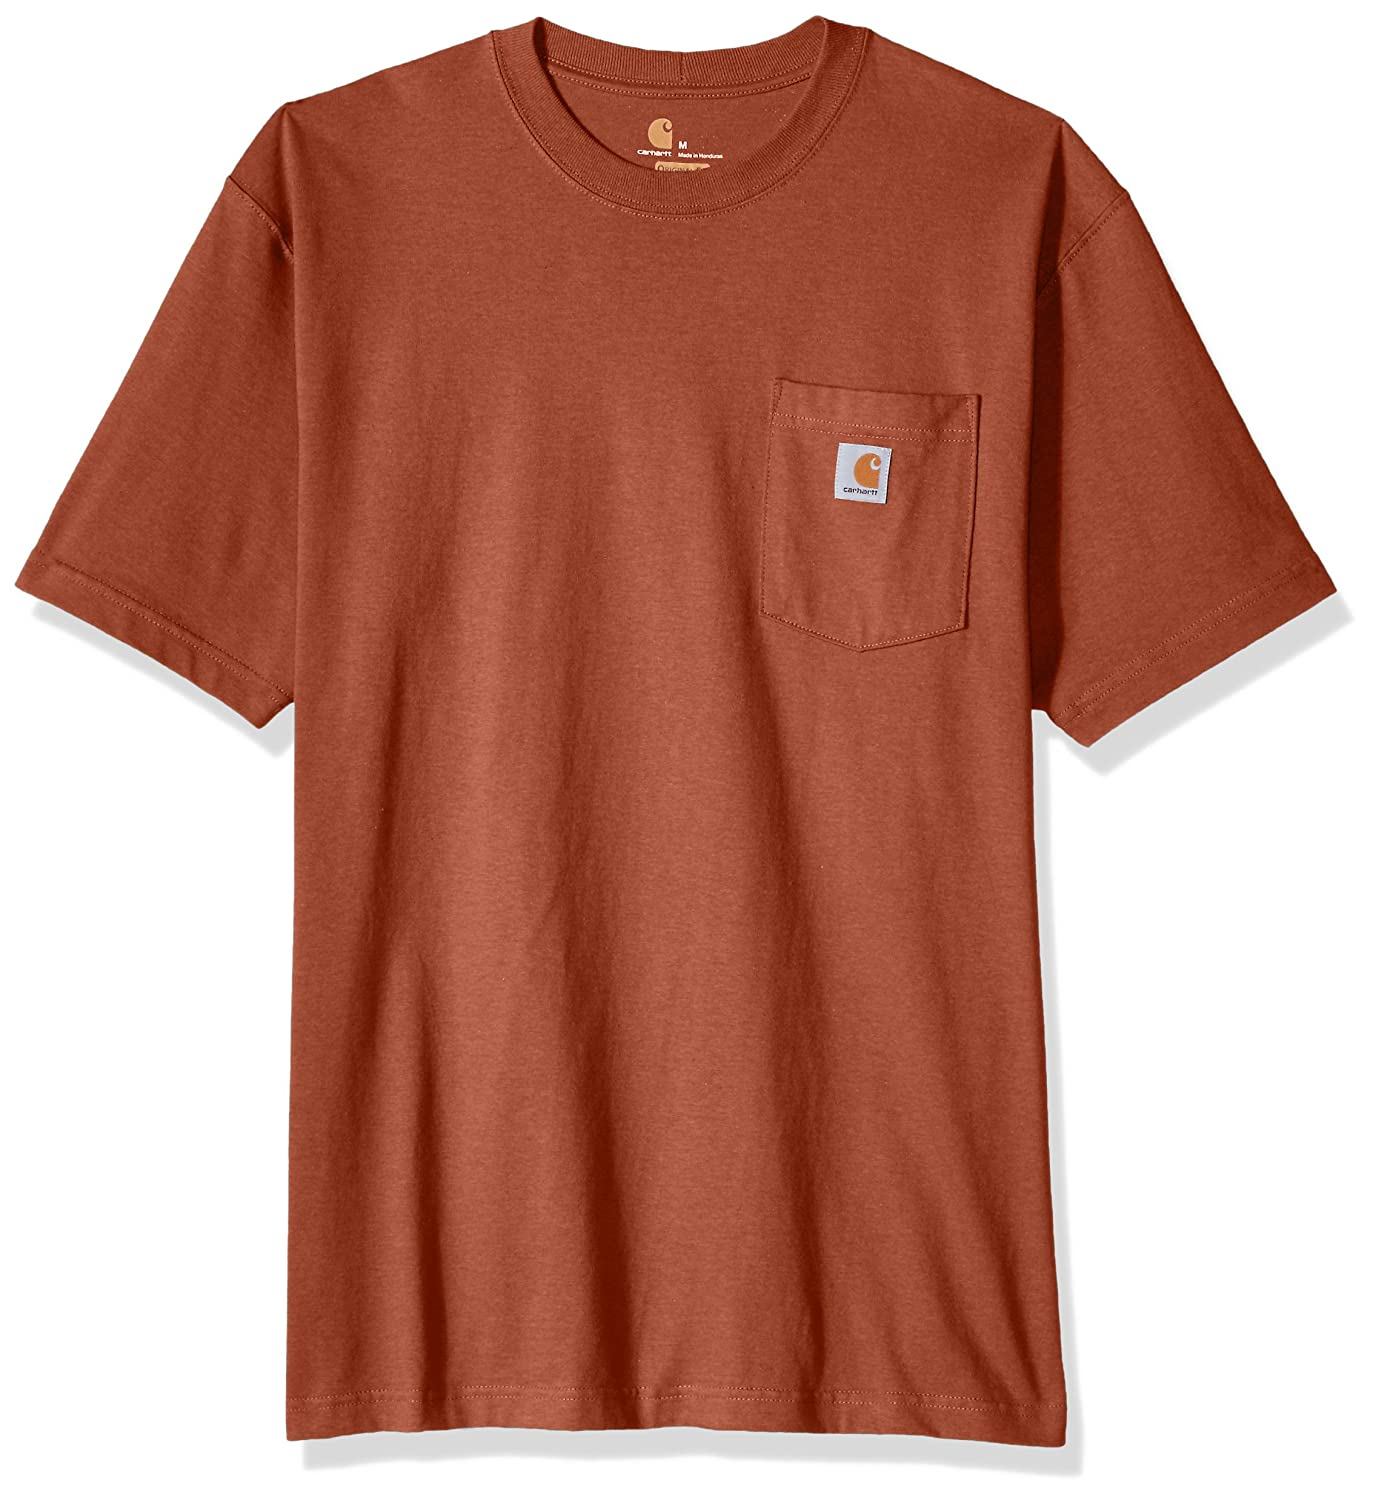 Carhartt SHIRT メンズ B06VX7X9WY Medium|Sequoia Heather Sequoia Heather Medium